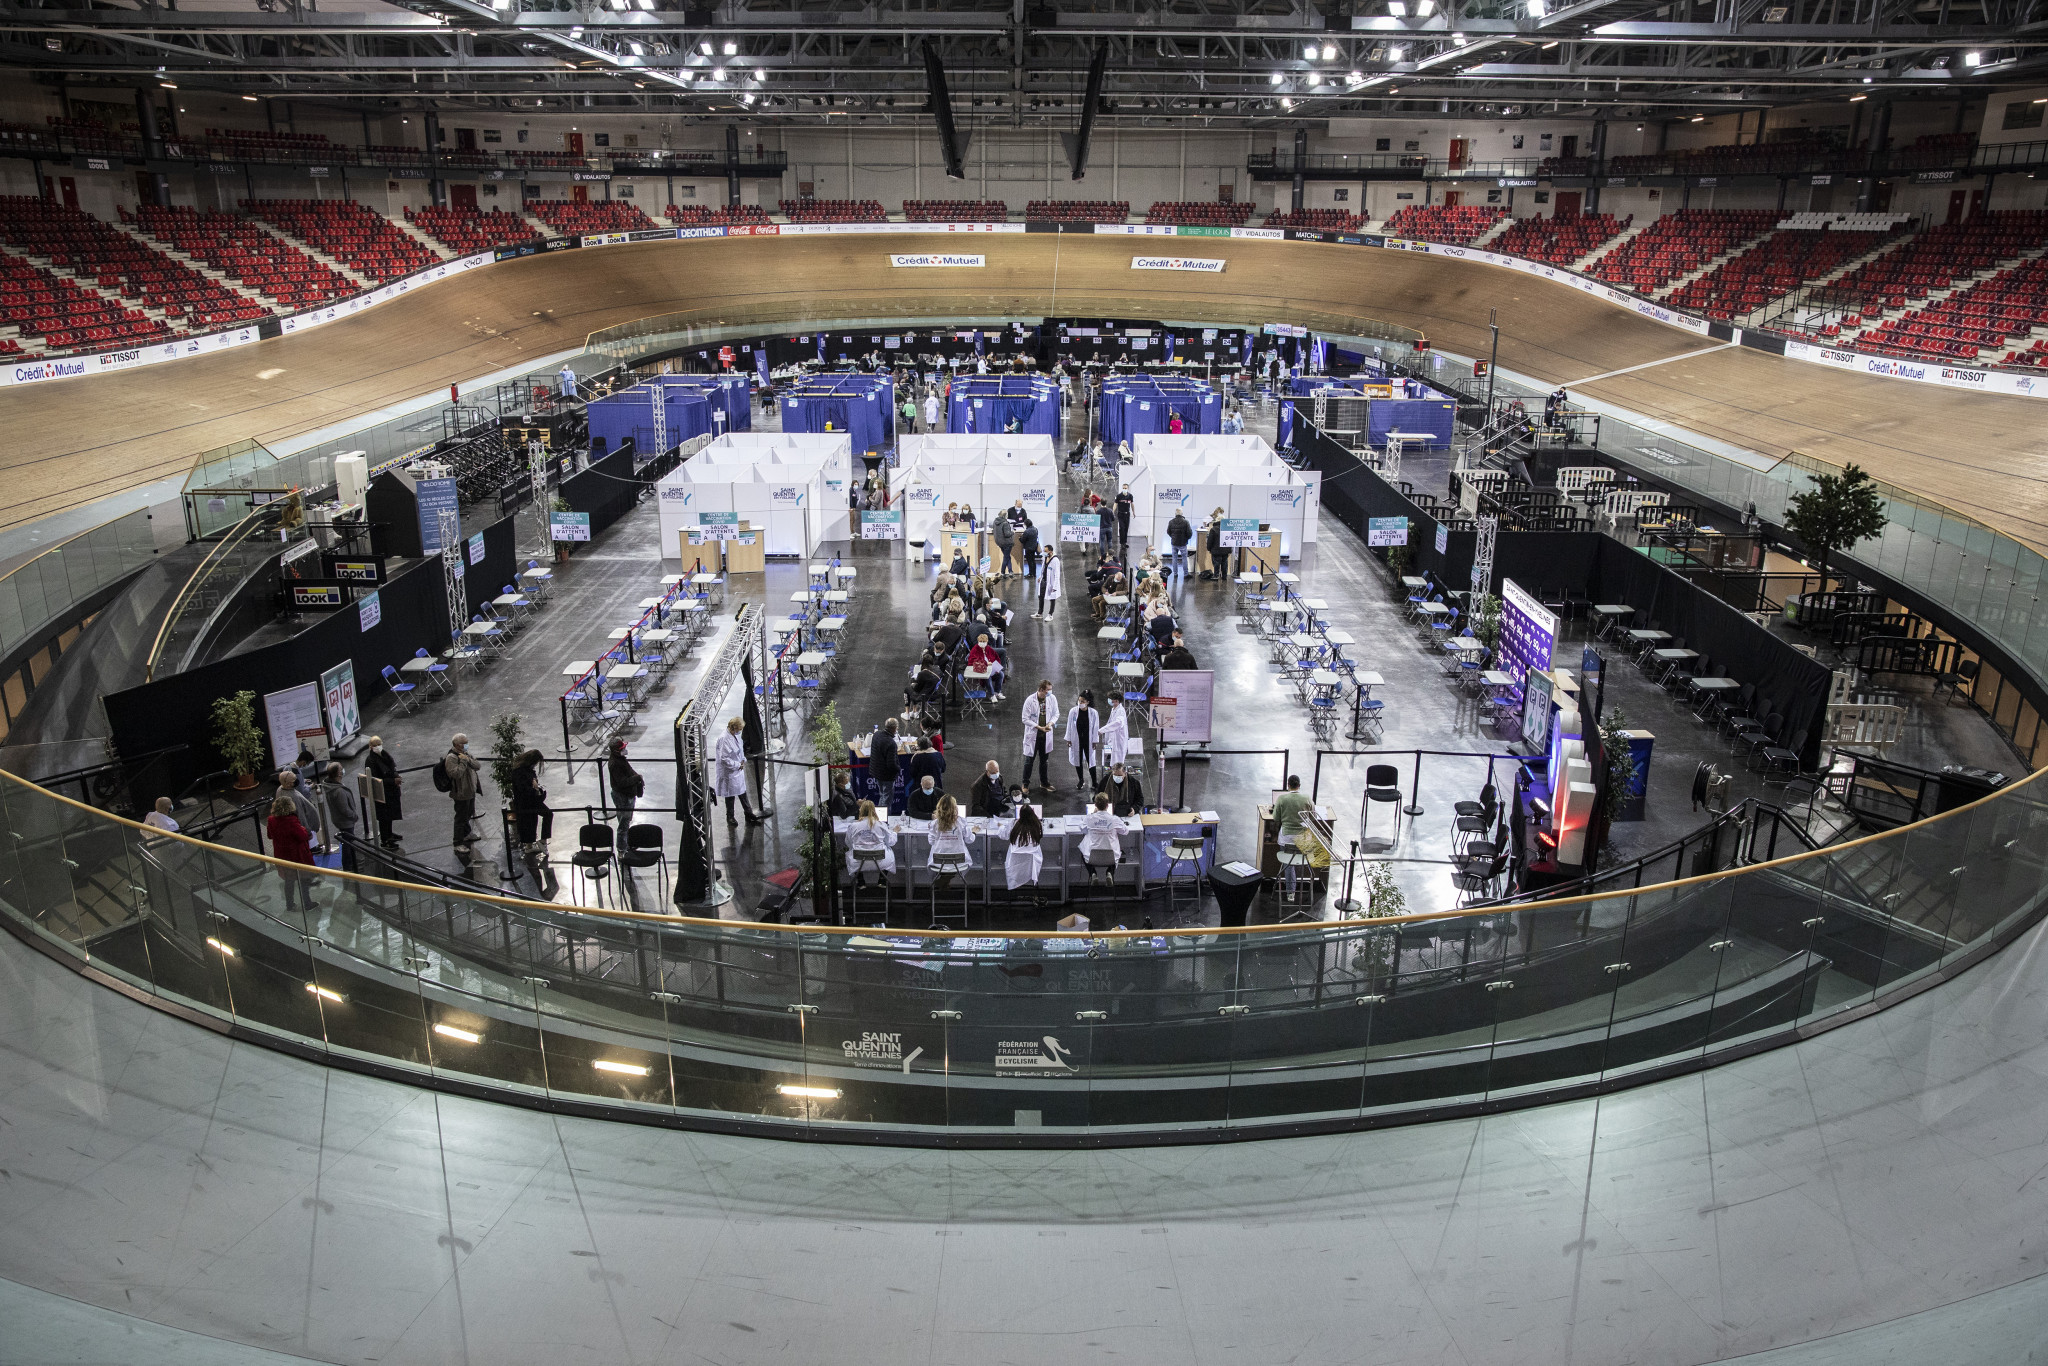 French UCI Track Champions League leg called off as venue needed for COVID-19 vaccination drive